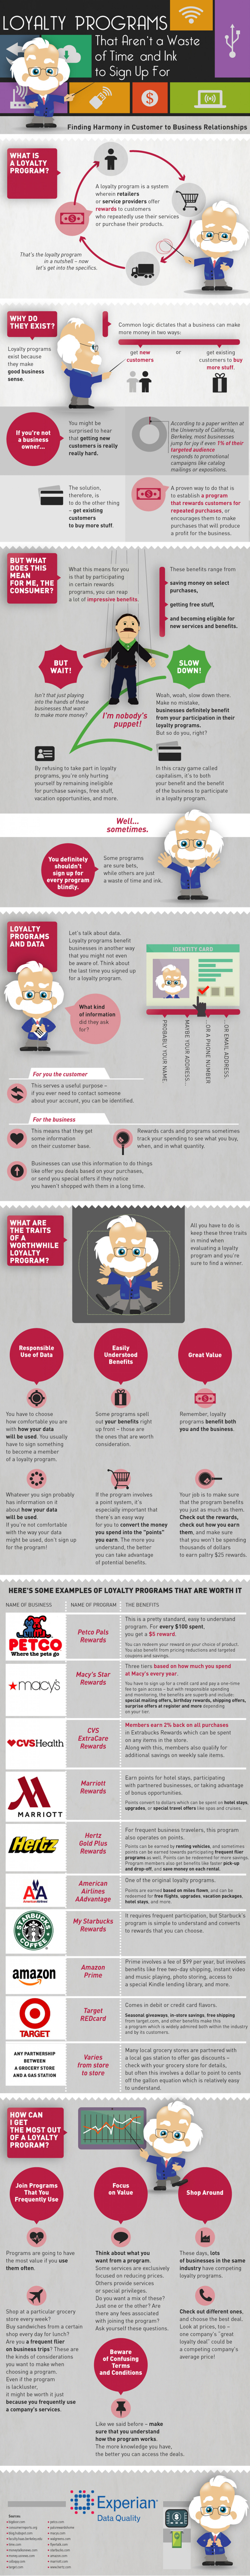 The Loyalty Programs That Aren't A Waste of Time and Ink to Sign Up For Infographic